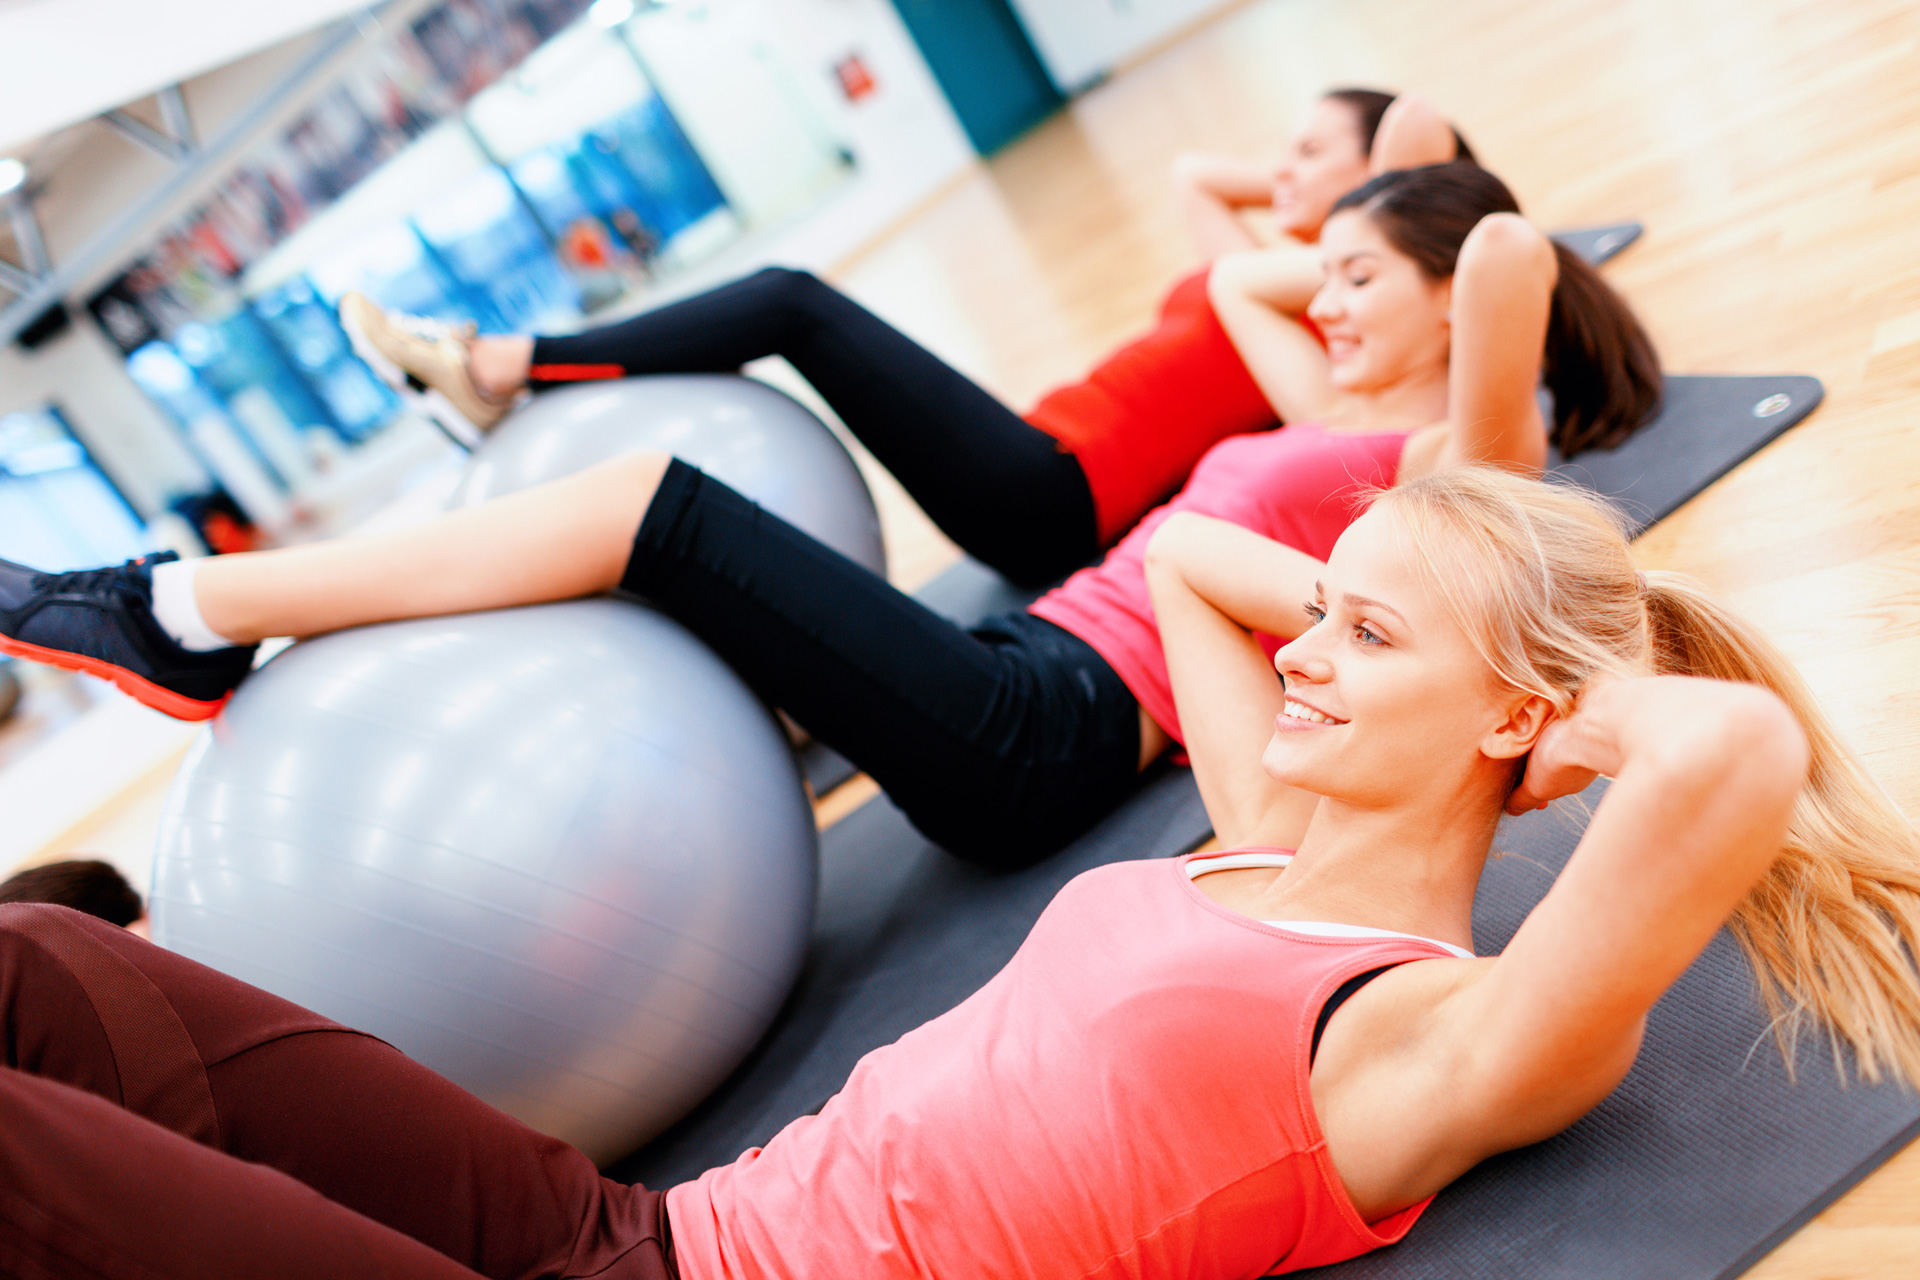 photodune-8696272-group-of-people-working-out-in-pilates-class-l